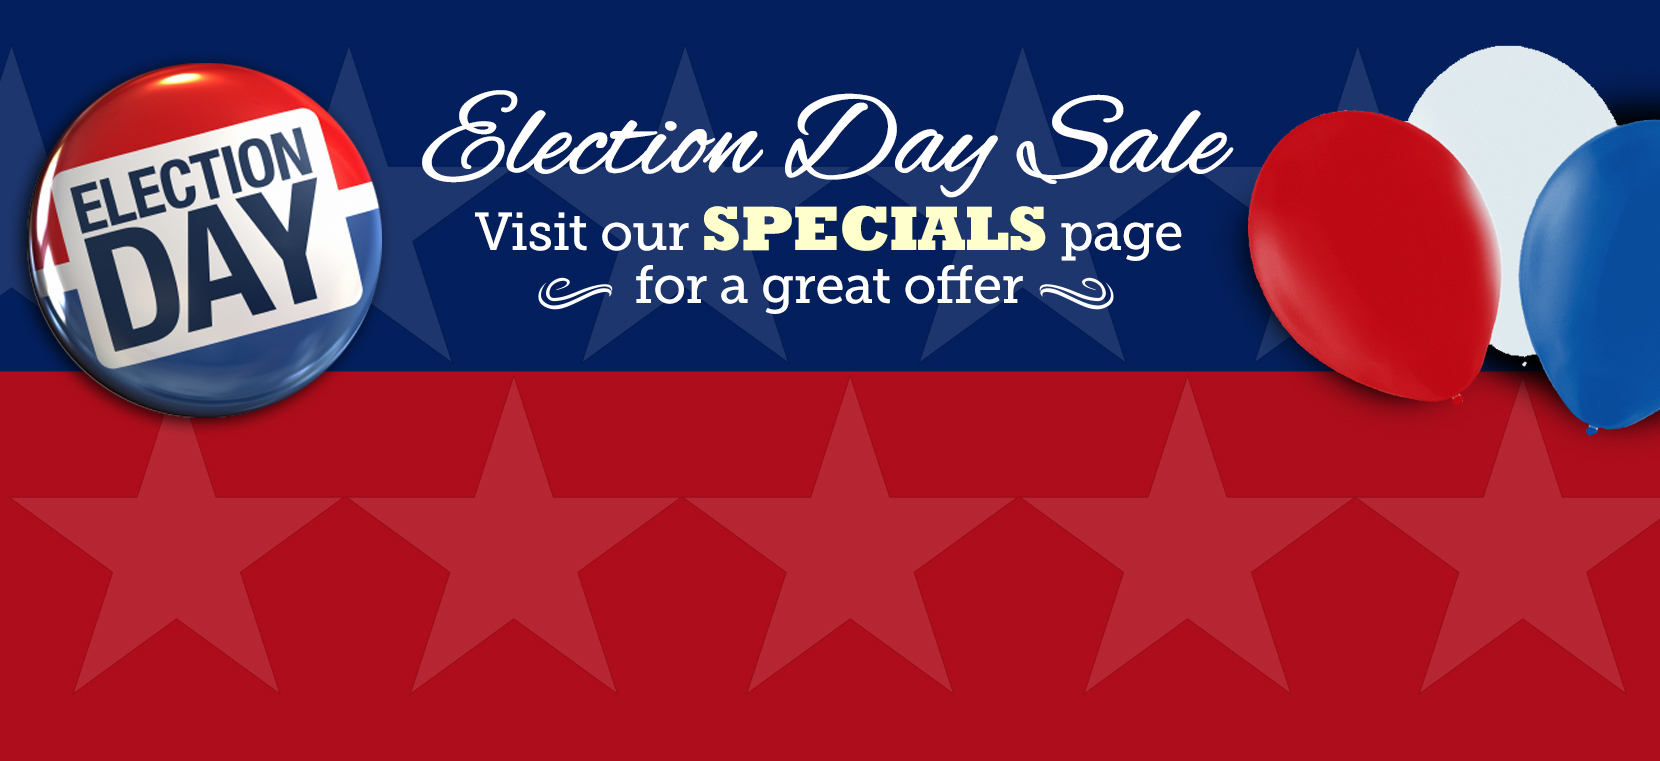 Election Day Natural and Organic Mattress Sale